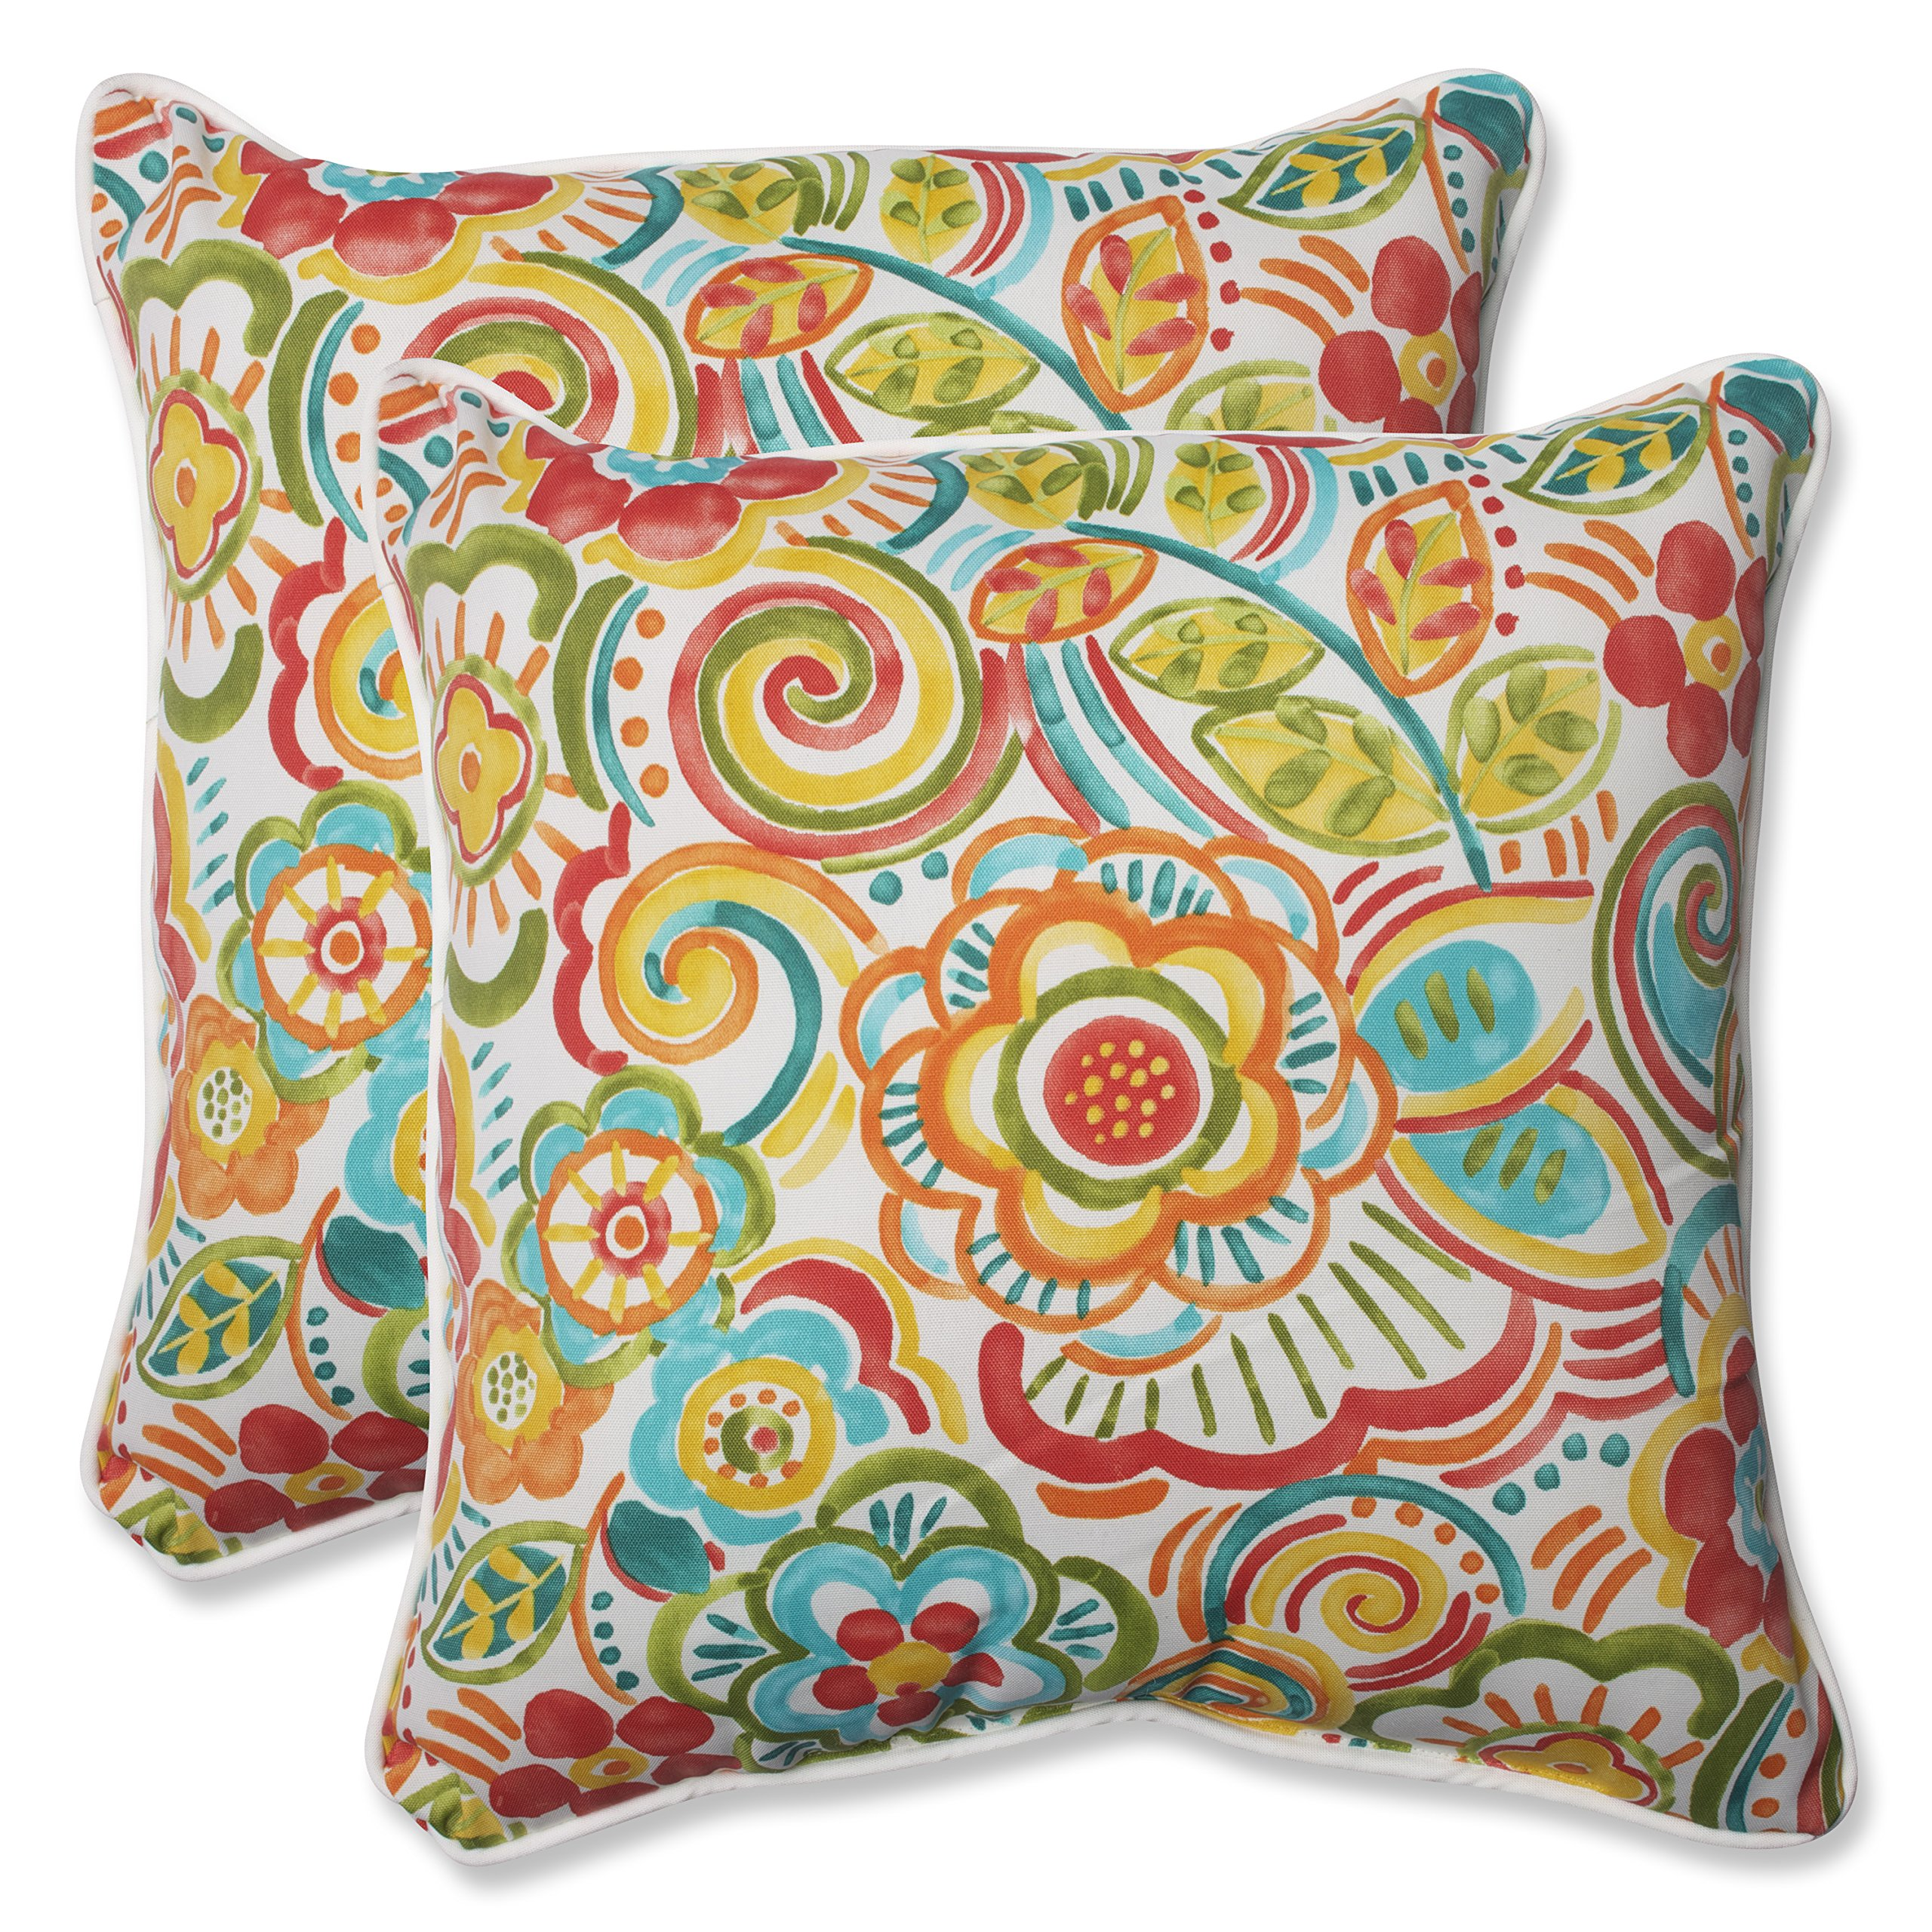 Pillow Perfect Outdoor Bronwood Carnival Throw Pillow, 18.5-Inch, Multicolored, Set of 2